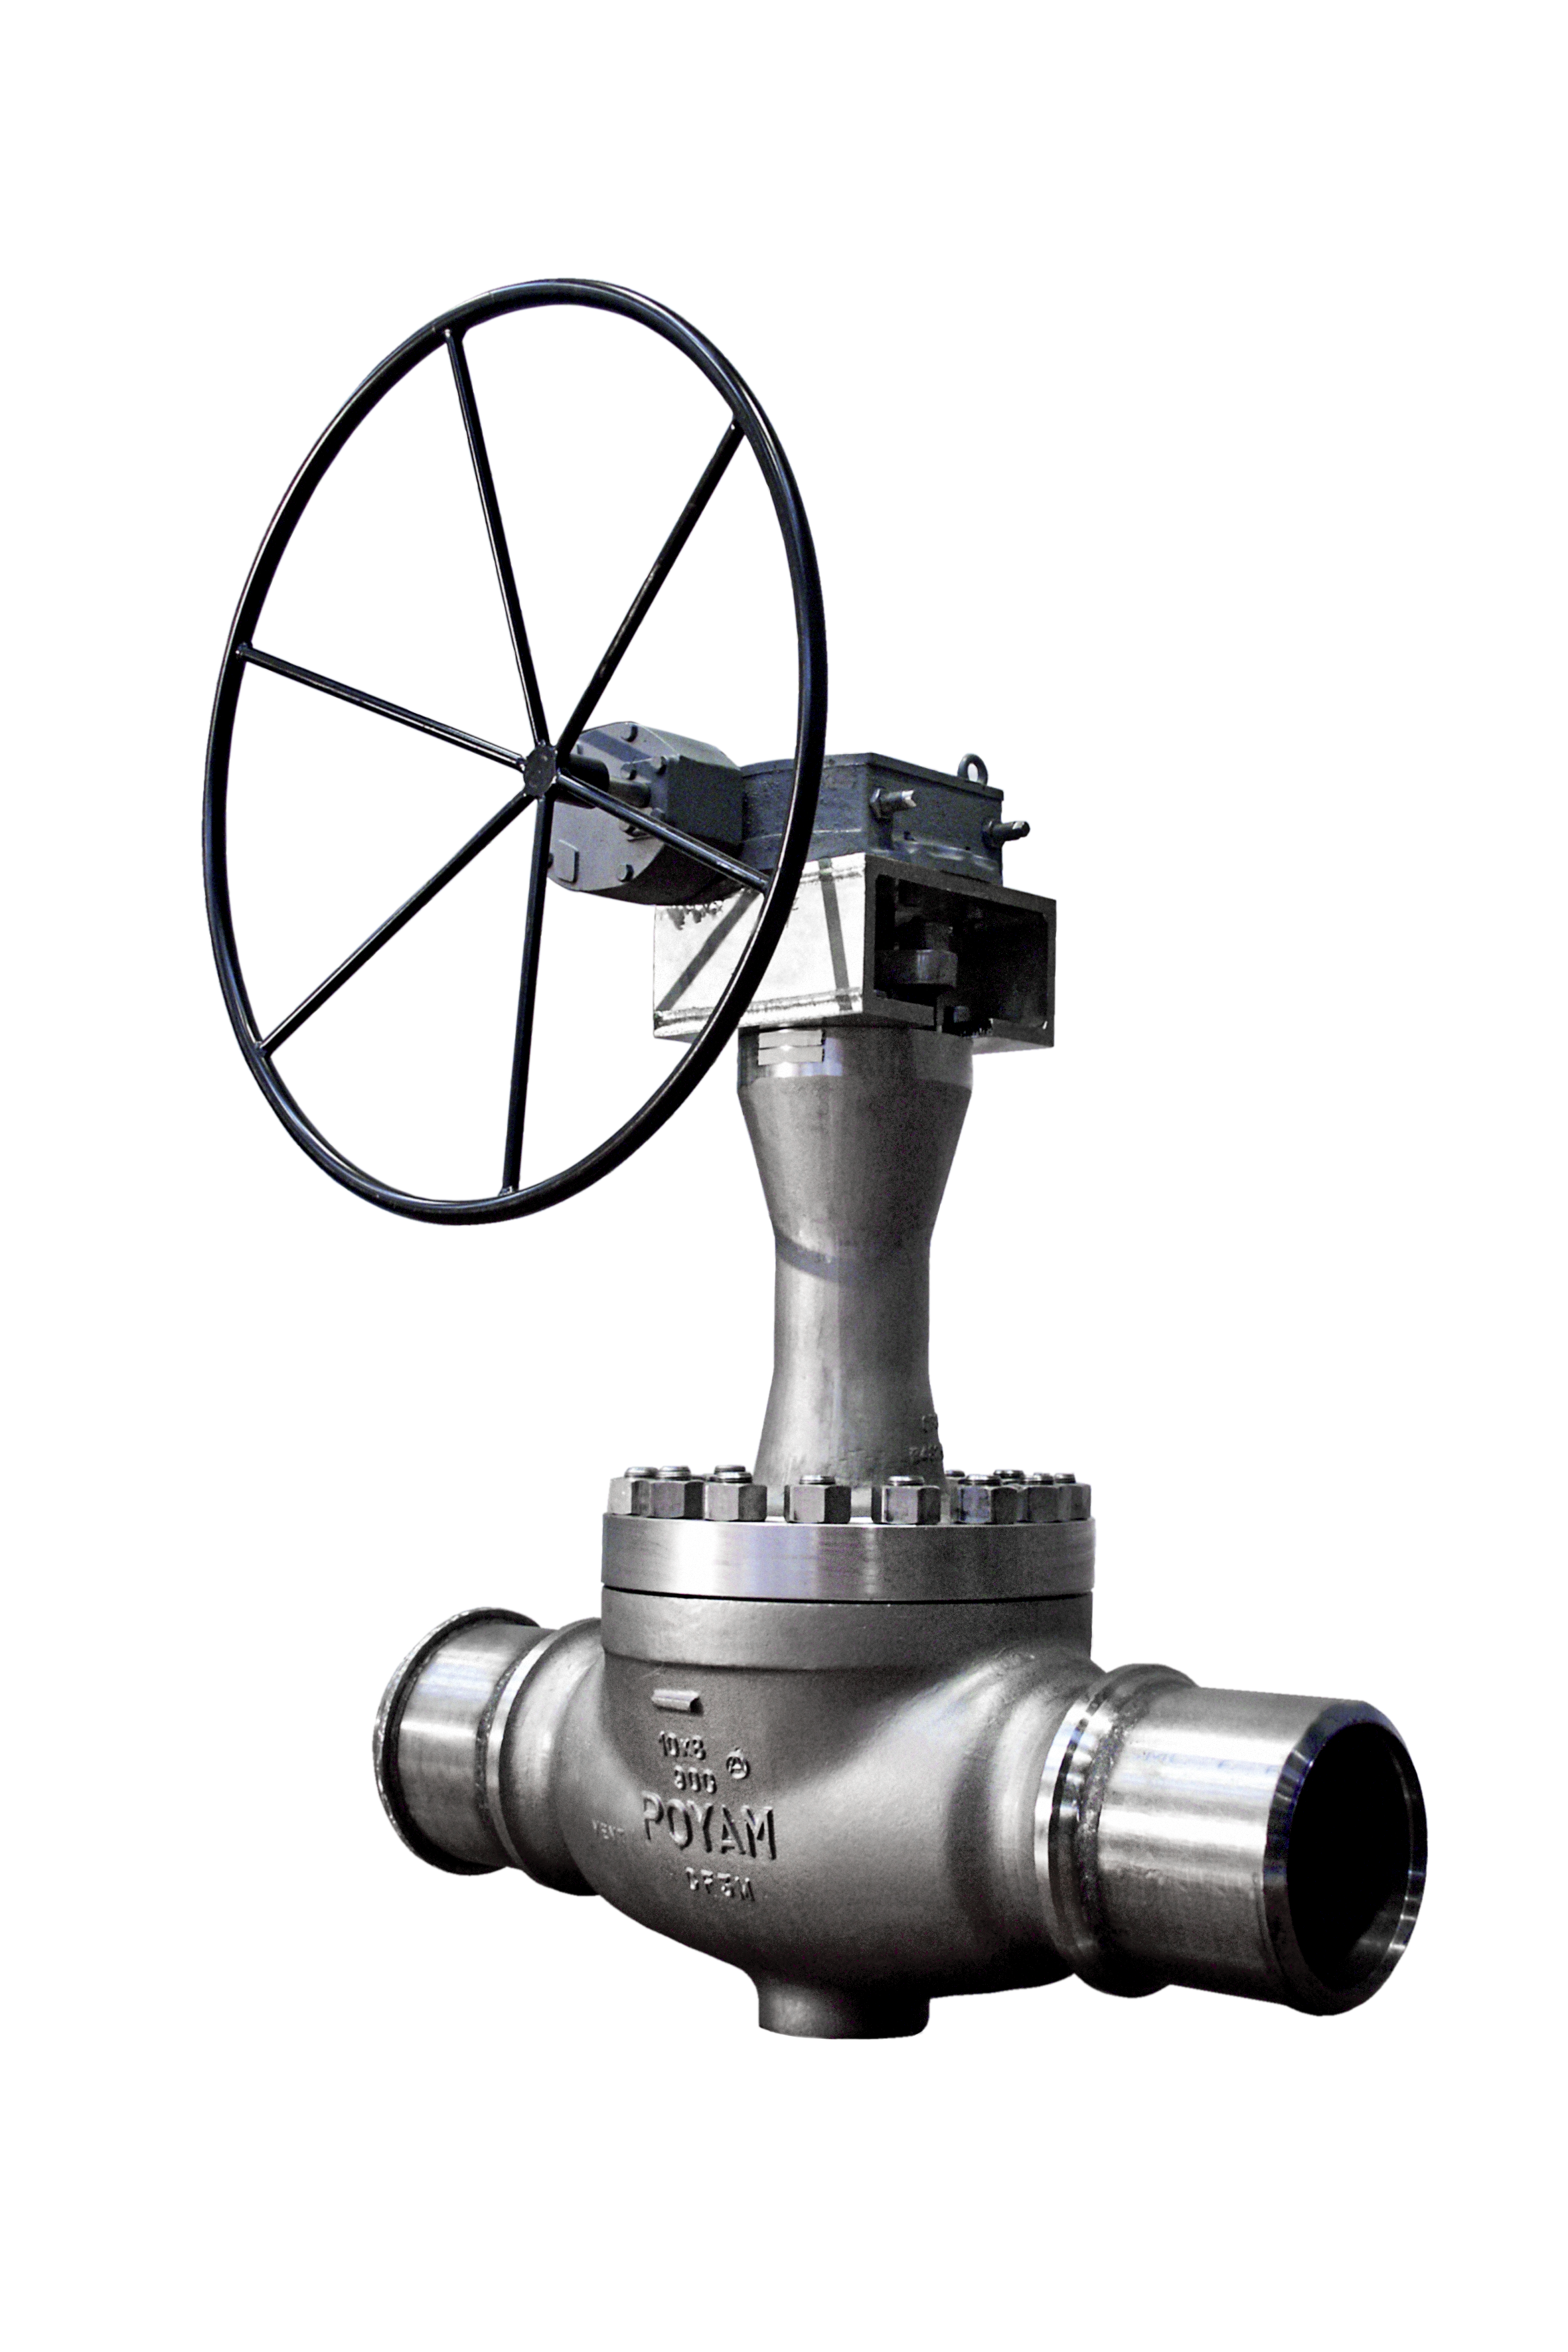 01-cryogenic-top-entry-ball-valve